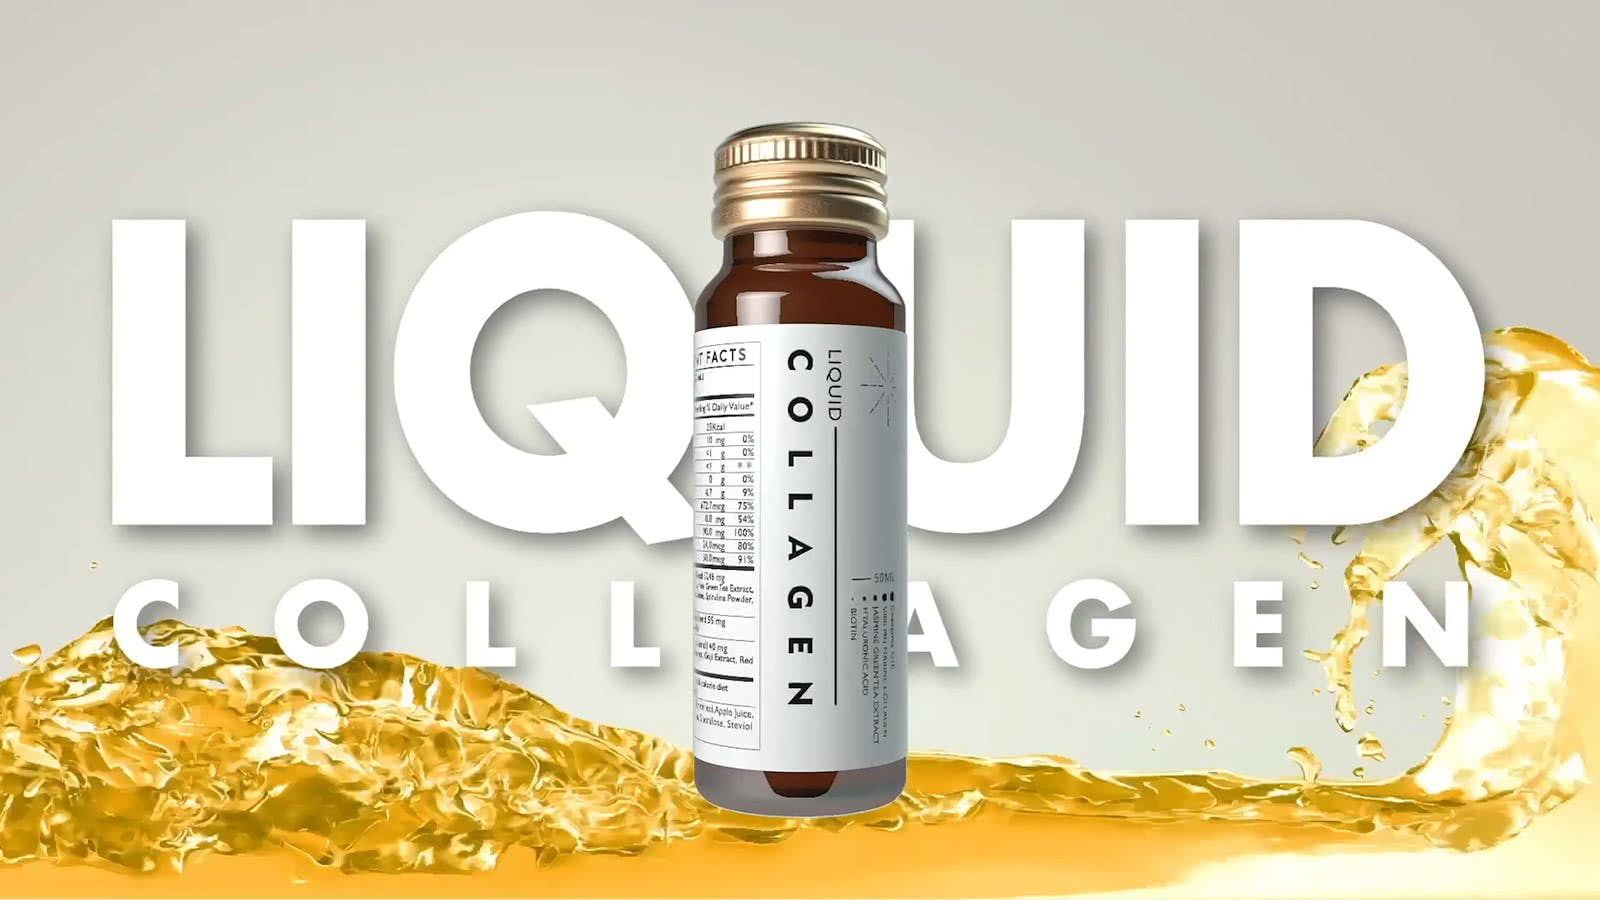 TCI to launch liquid collagen at 2018 SSW